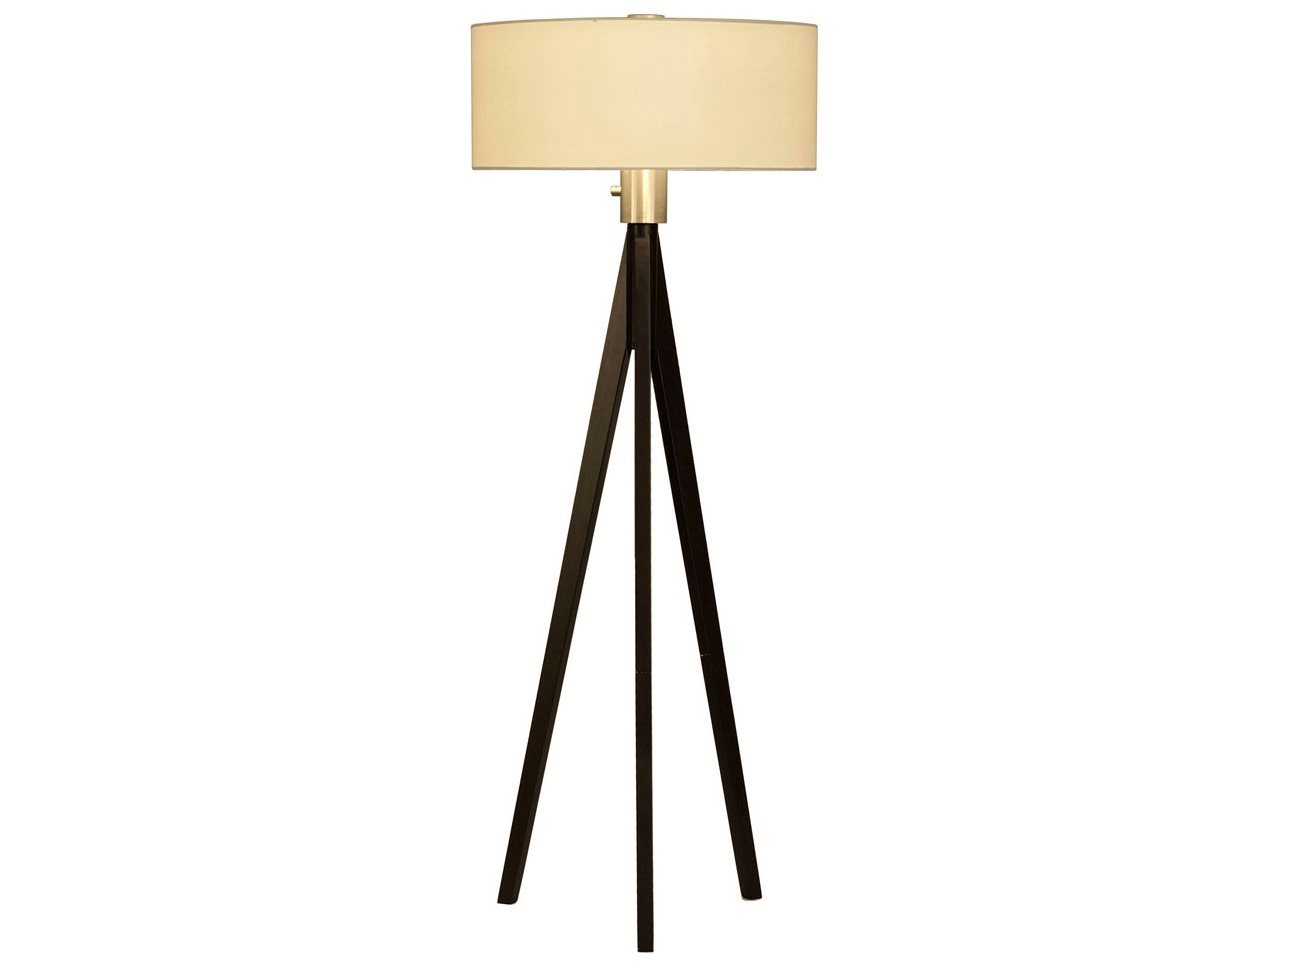 Tripod Pecan Finish Legs Amp Brushed Nickel Floor Lamp 10858